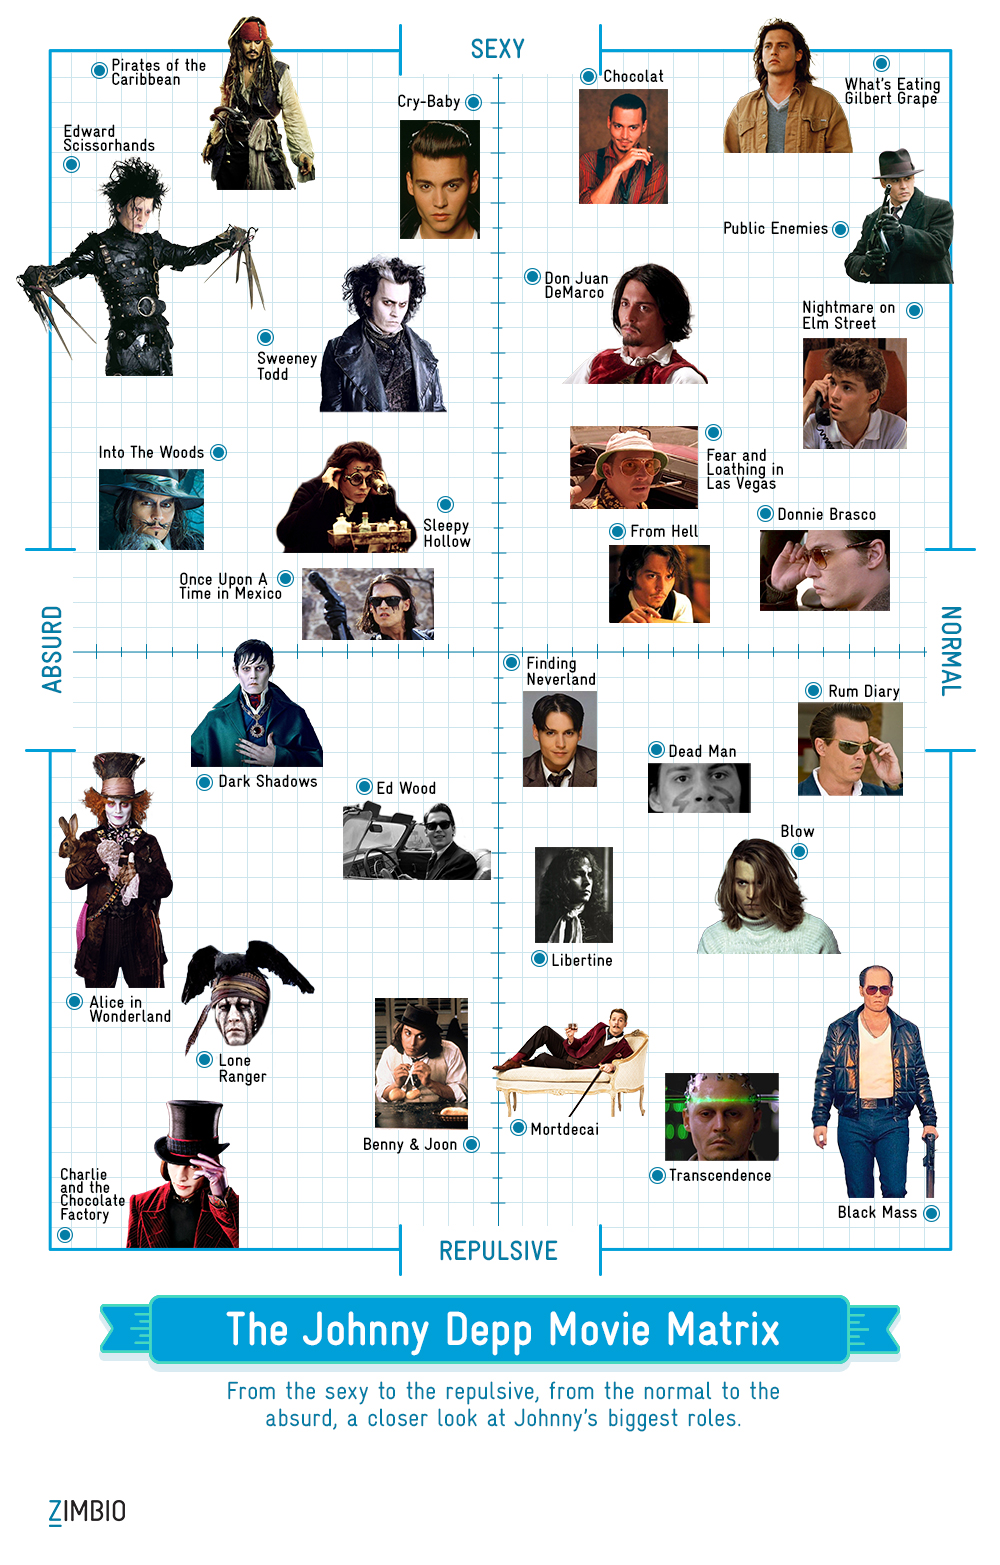 The Johnny Depp Movie Matrix